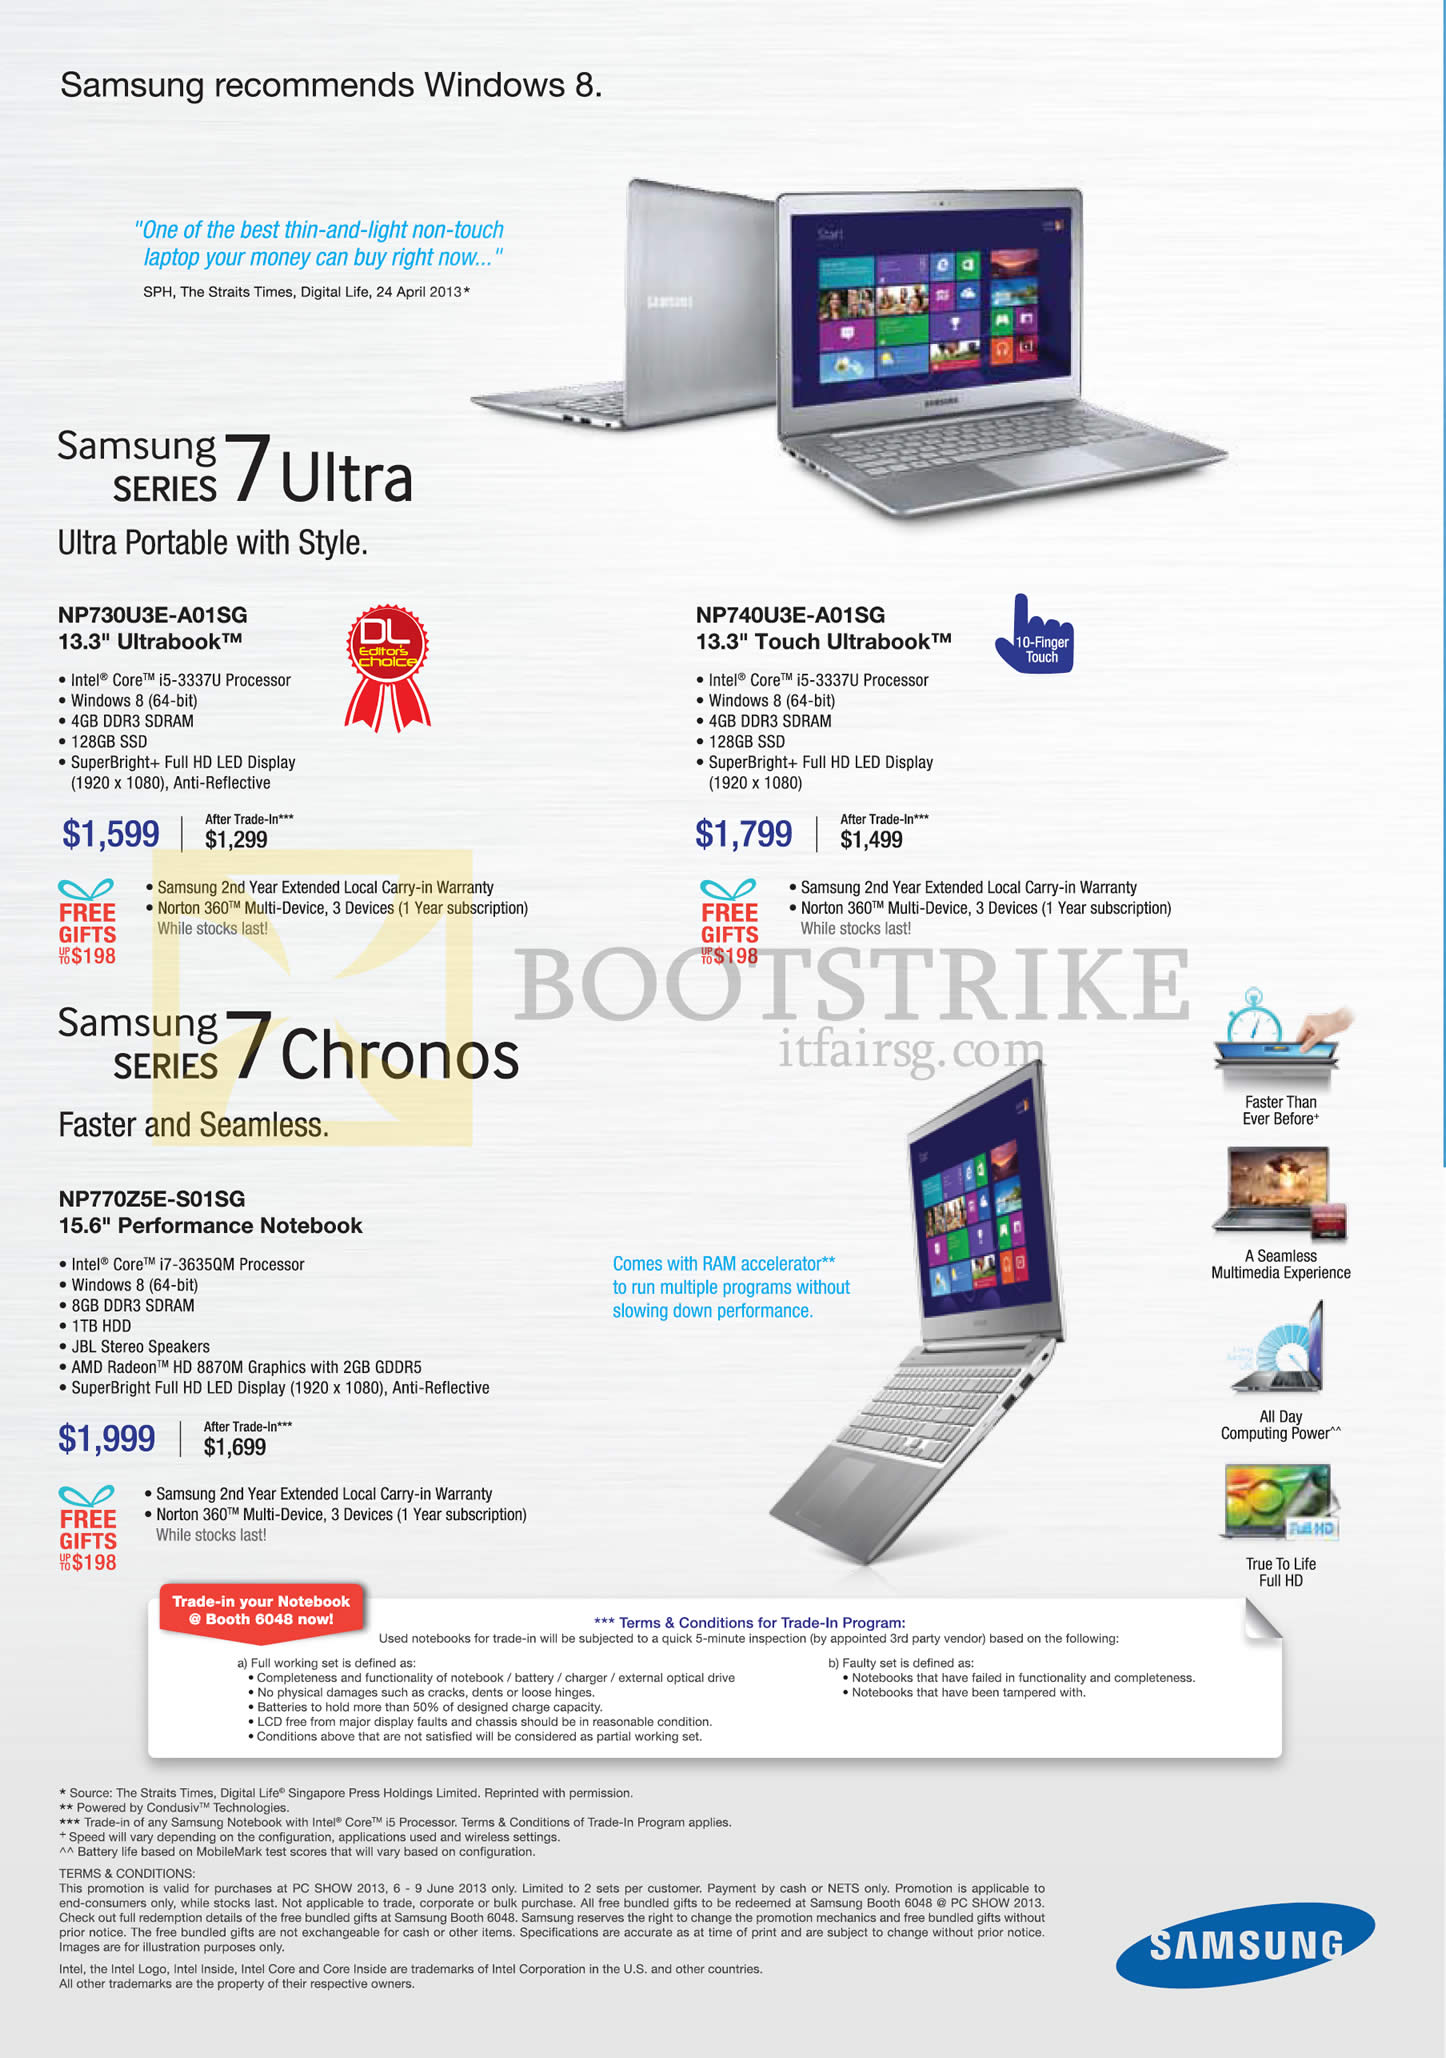 Samsung notebook in singapore - Pc Show 2013 Price List Image Brochure Of Samsung Notebooks Series 7 Ultra Np730u3e A01sg